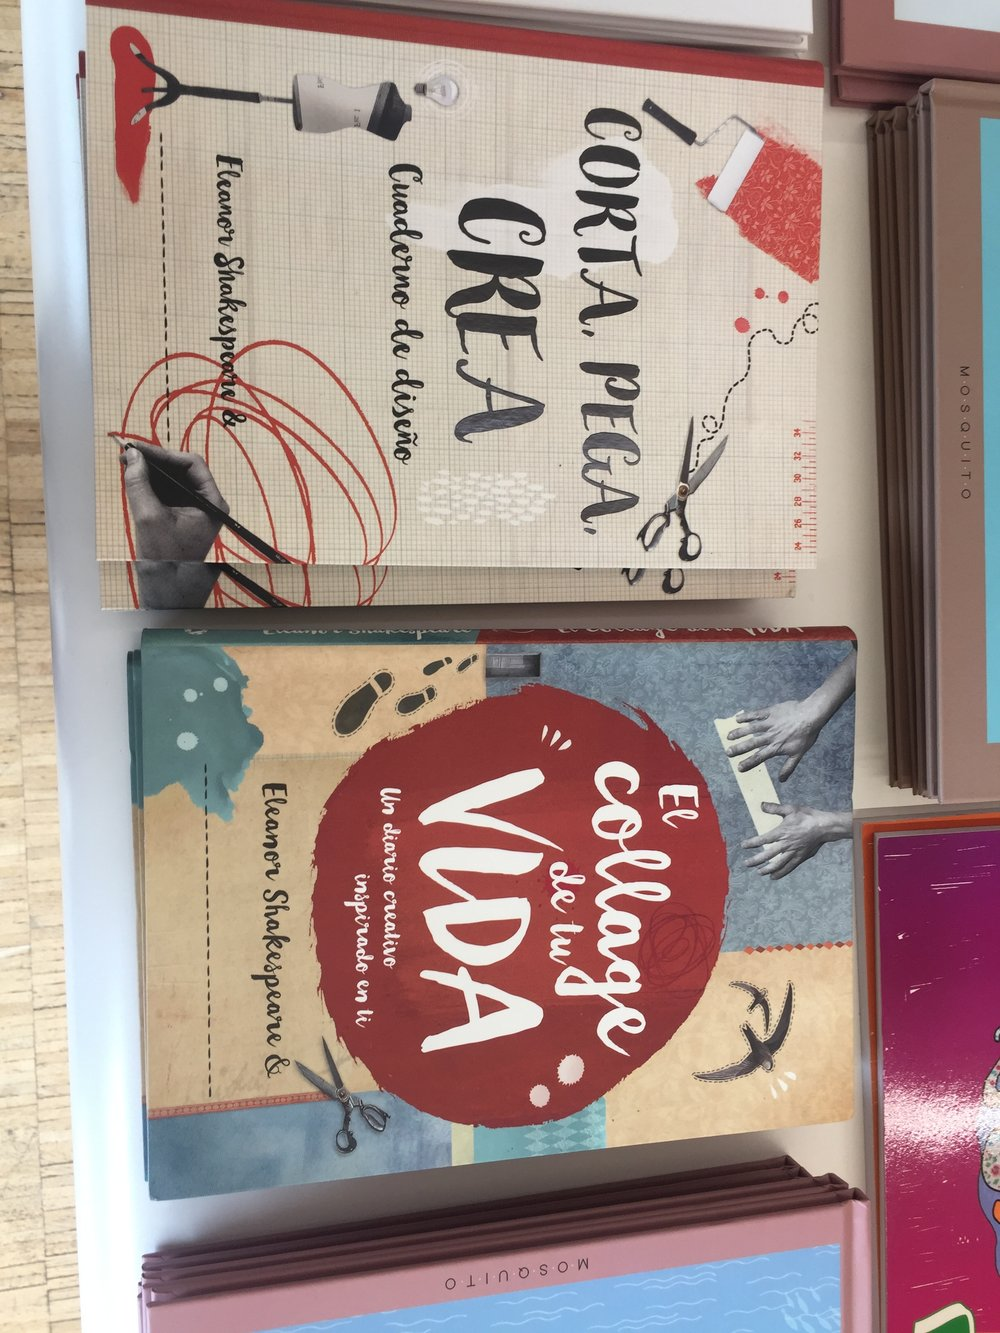 From a range of journals and colouring books €13.41